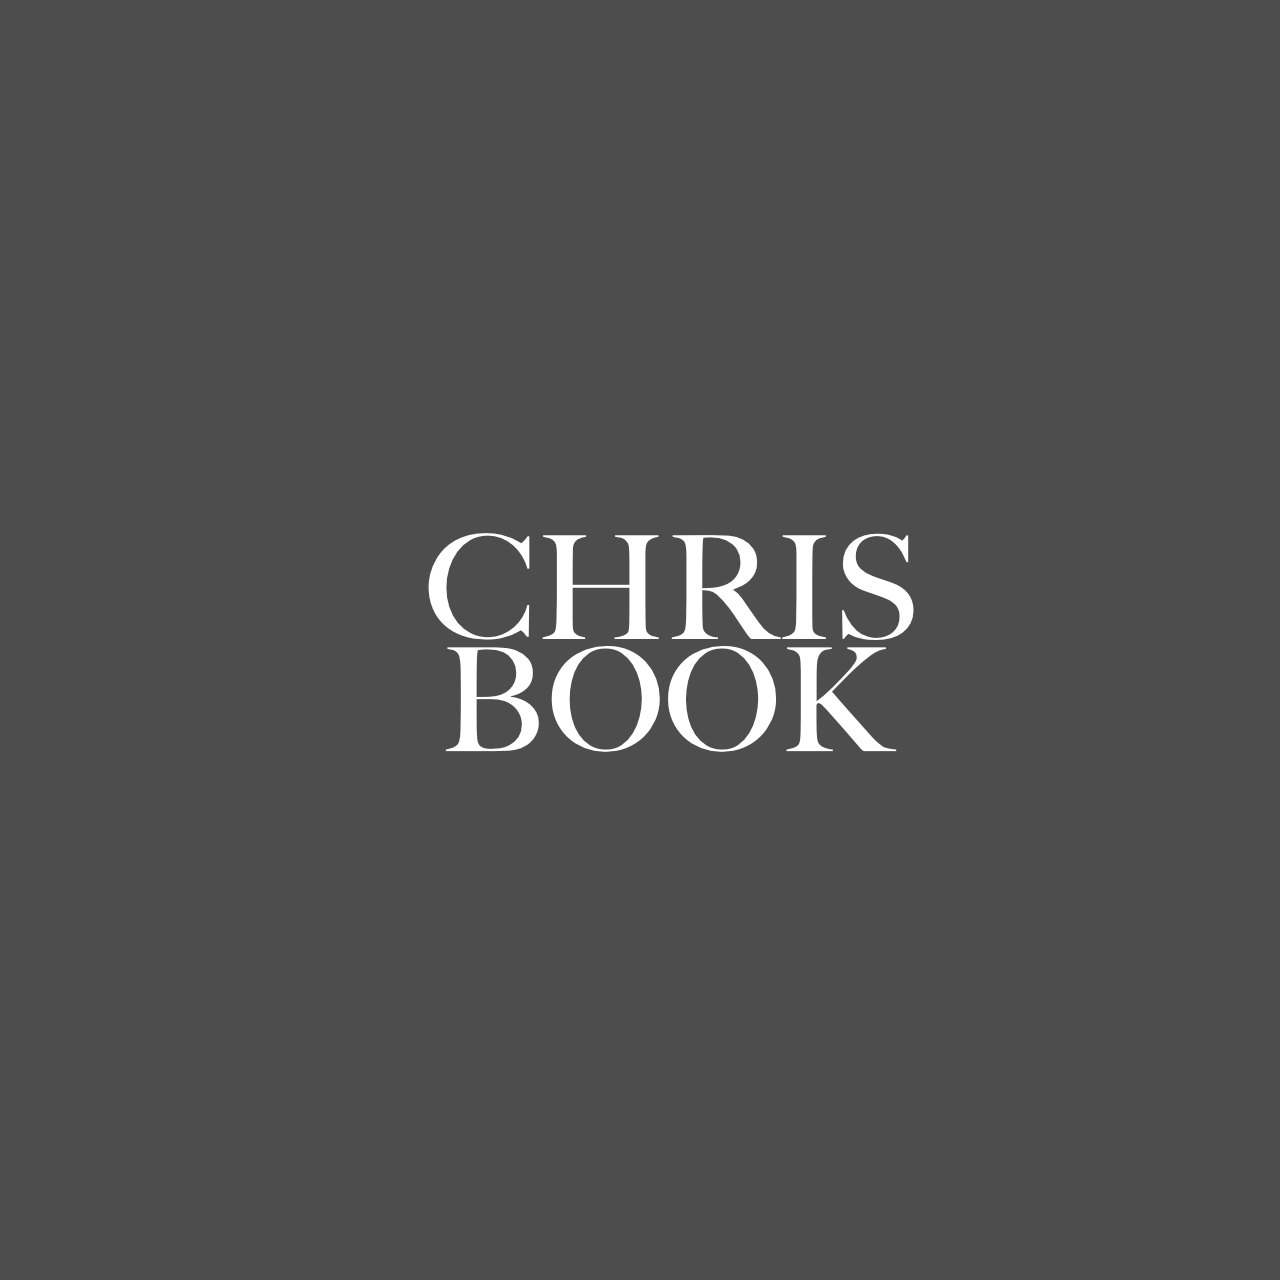 Chris Book sq.jpg